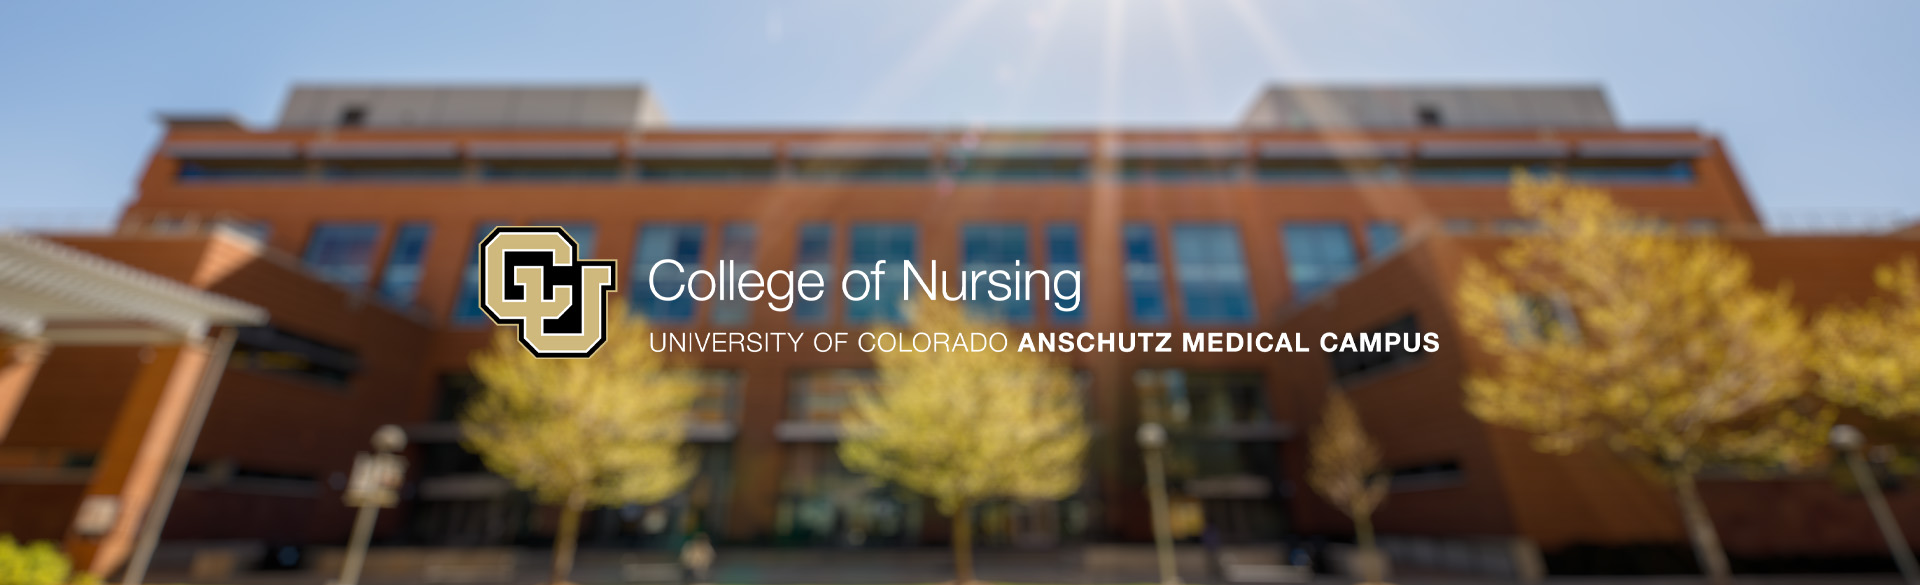 University of Colorado College of Nursing